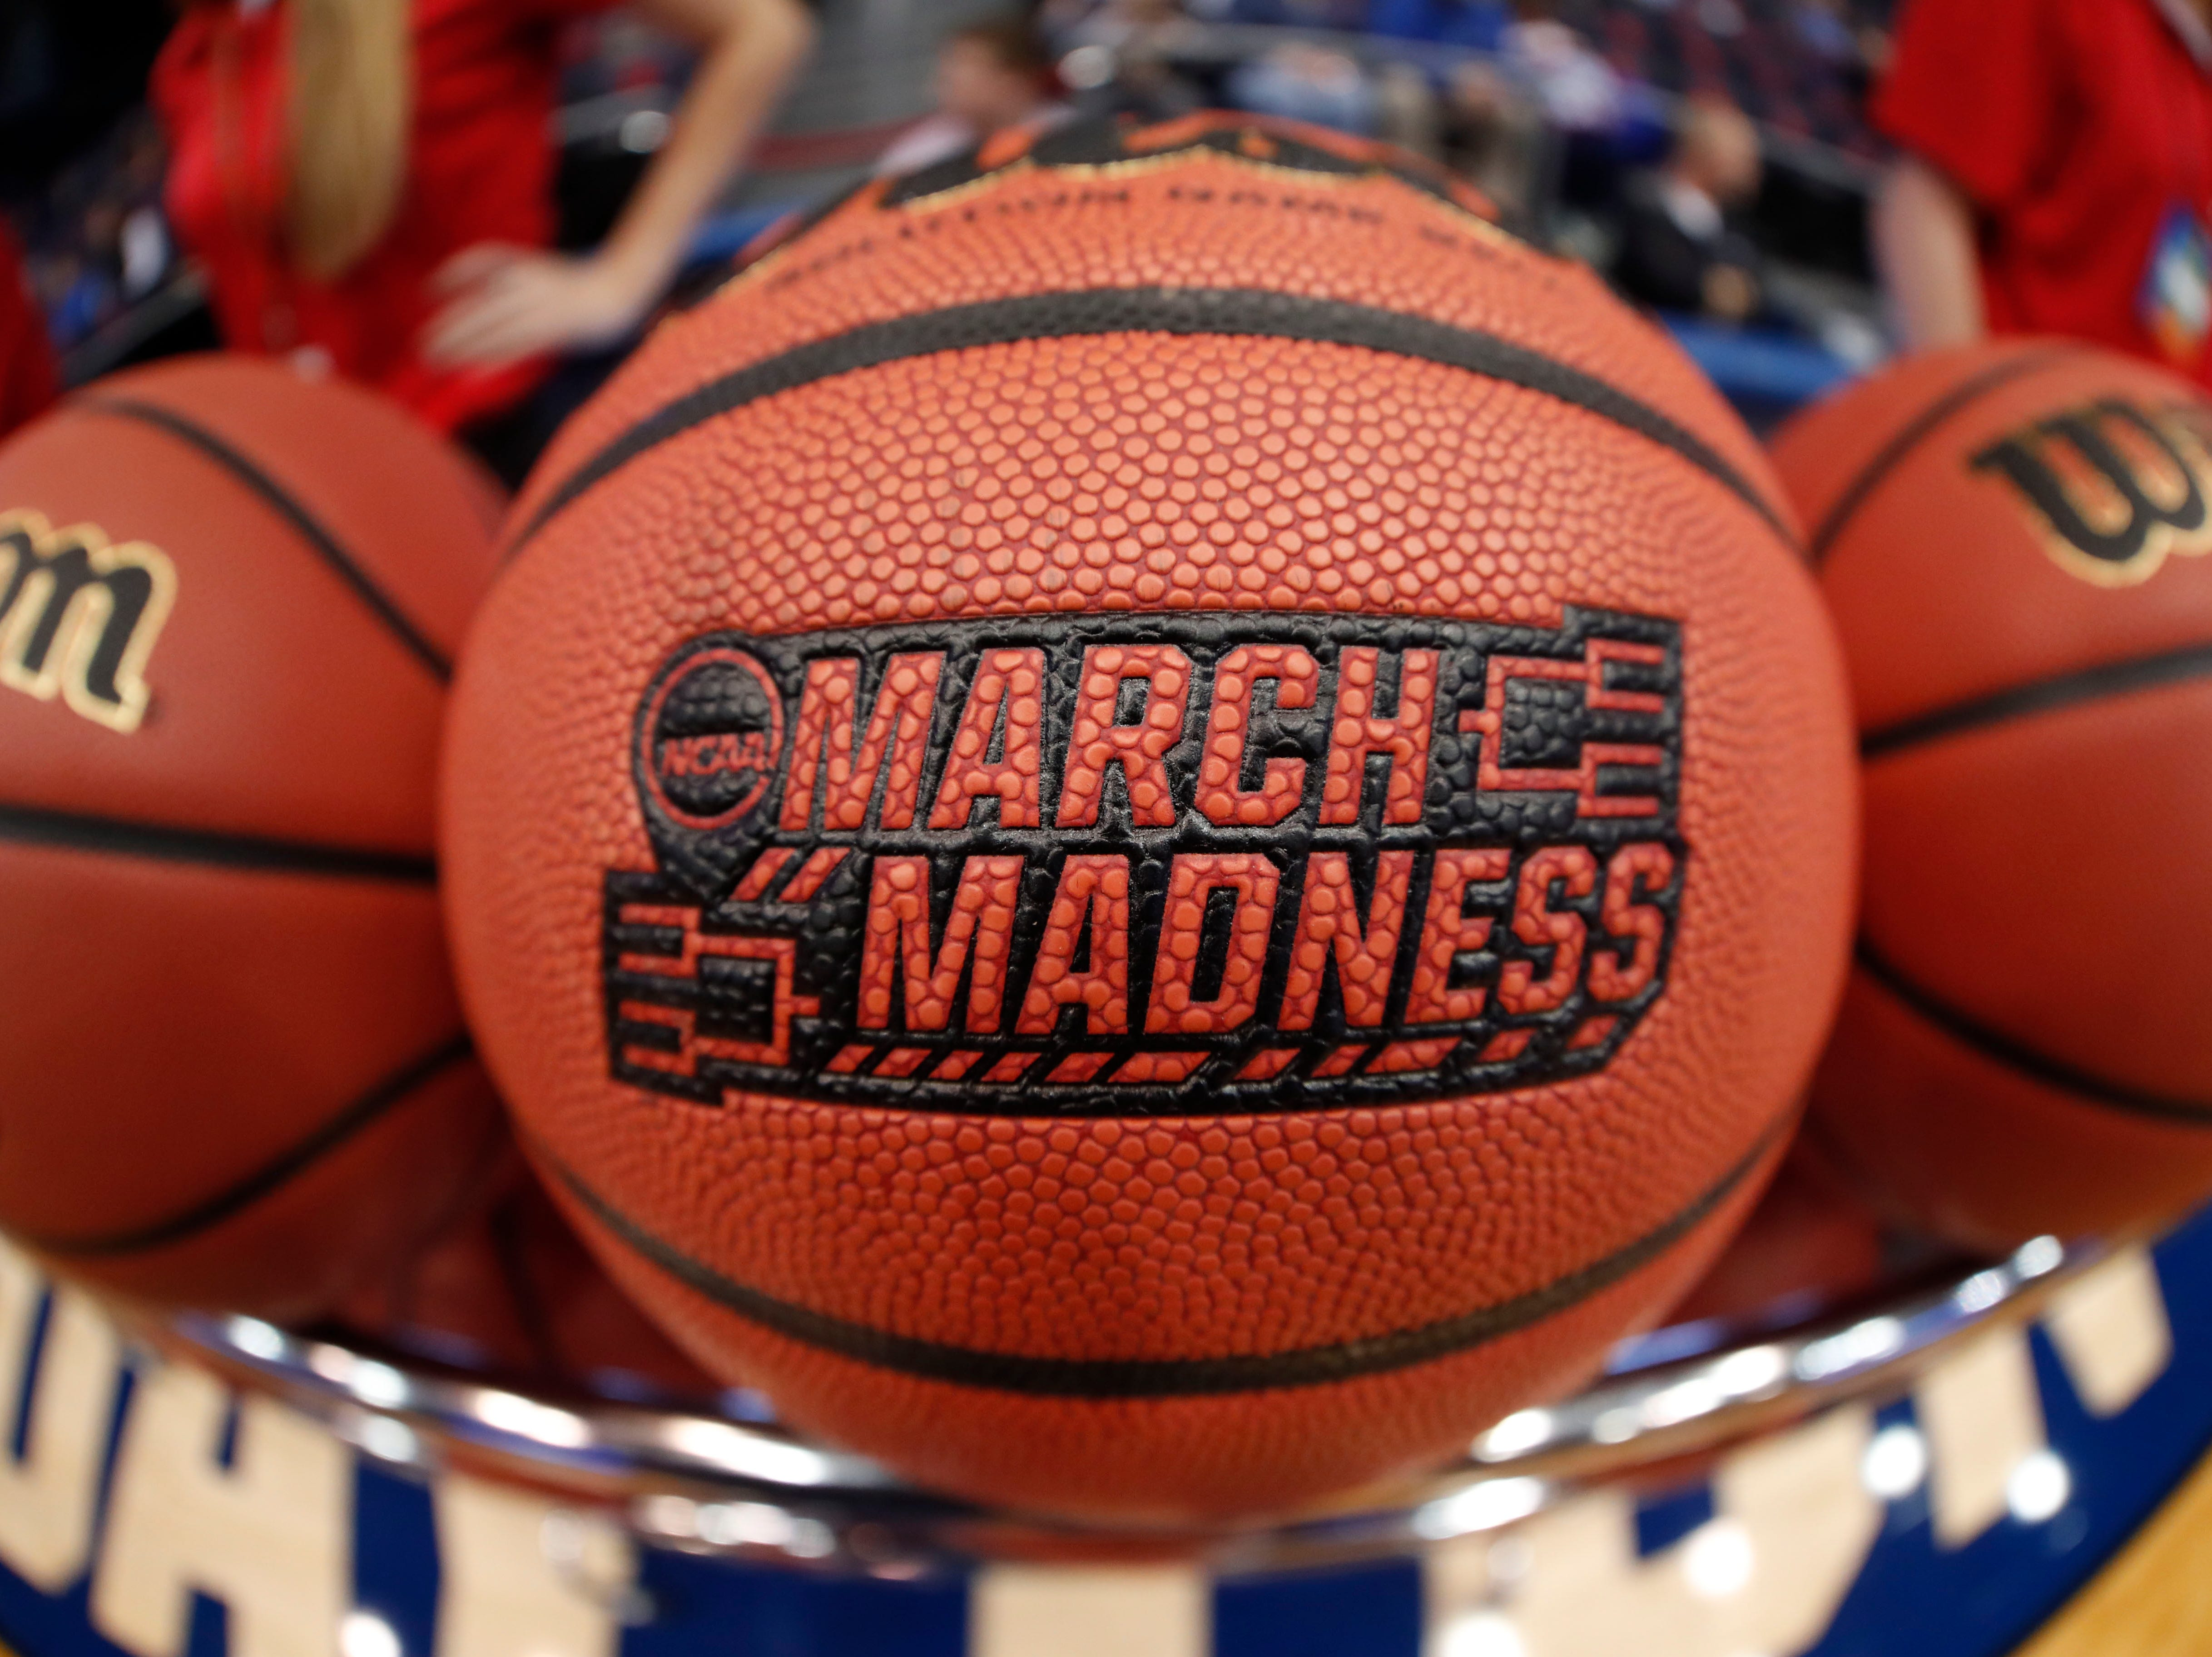 March Madness revenue is insane. So is soaring student debt. Time for March sanity?